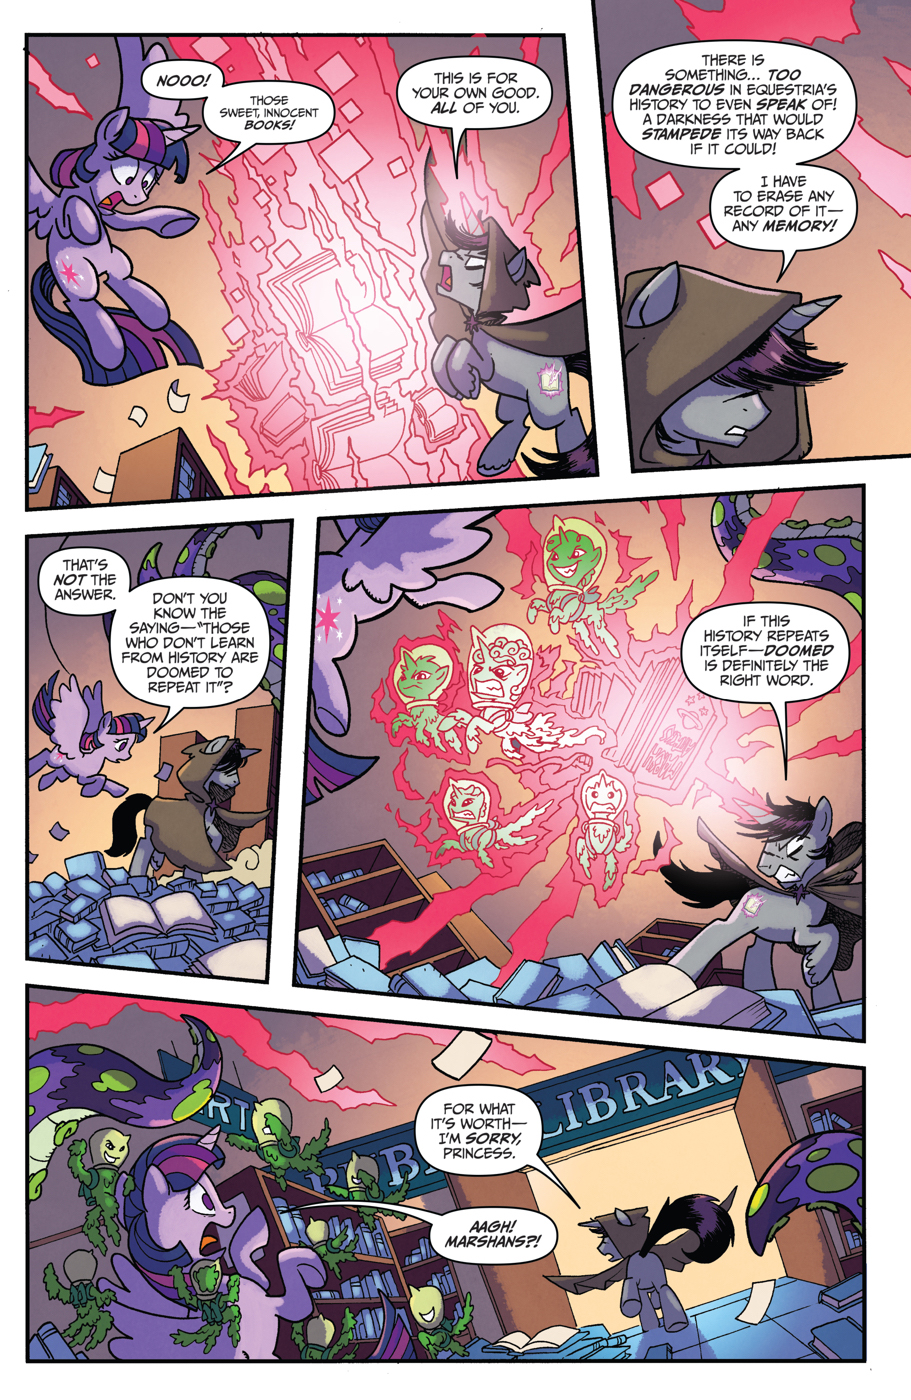 Read online My Little Pony: Friendship is Magic comic -  Issue #52 - 6